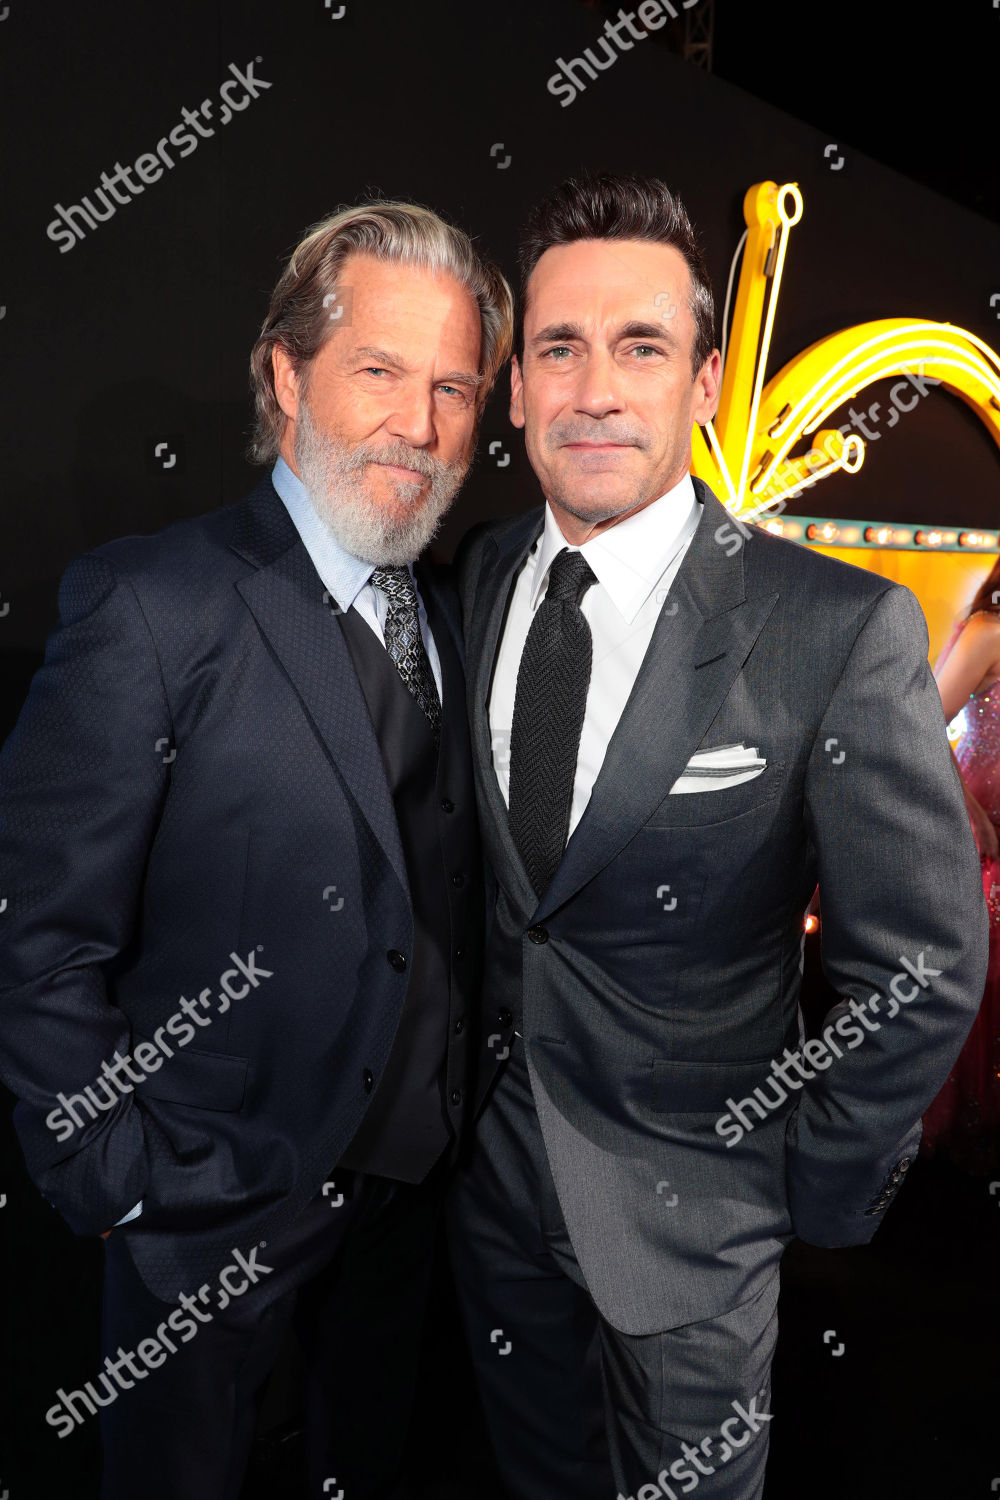 ¿Cuánto mide Jon Hamm? Twentieth-century-fox-bad-times-at-the-el-royale-global-film-premiere-at-tcl-chinese-theatre-los-angeles-usa-shutterstock-editorial-9889786eu